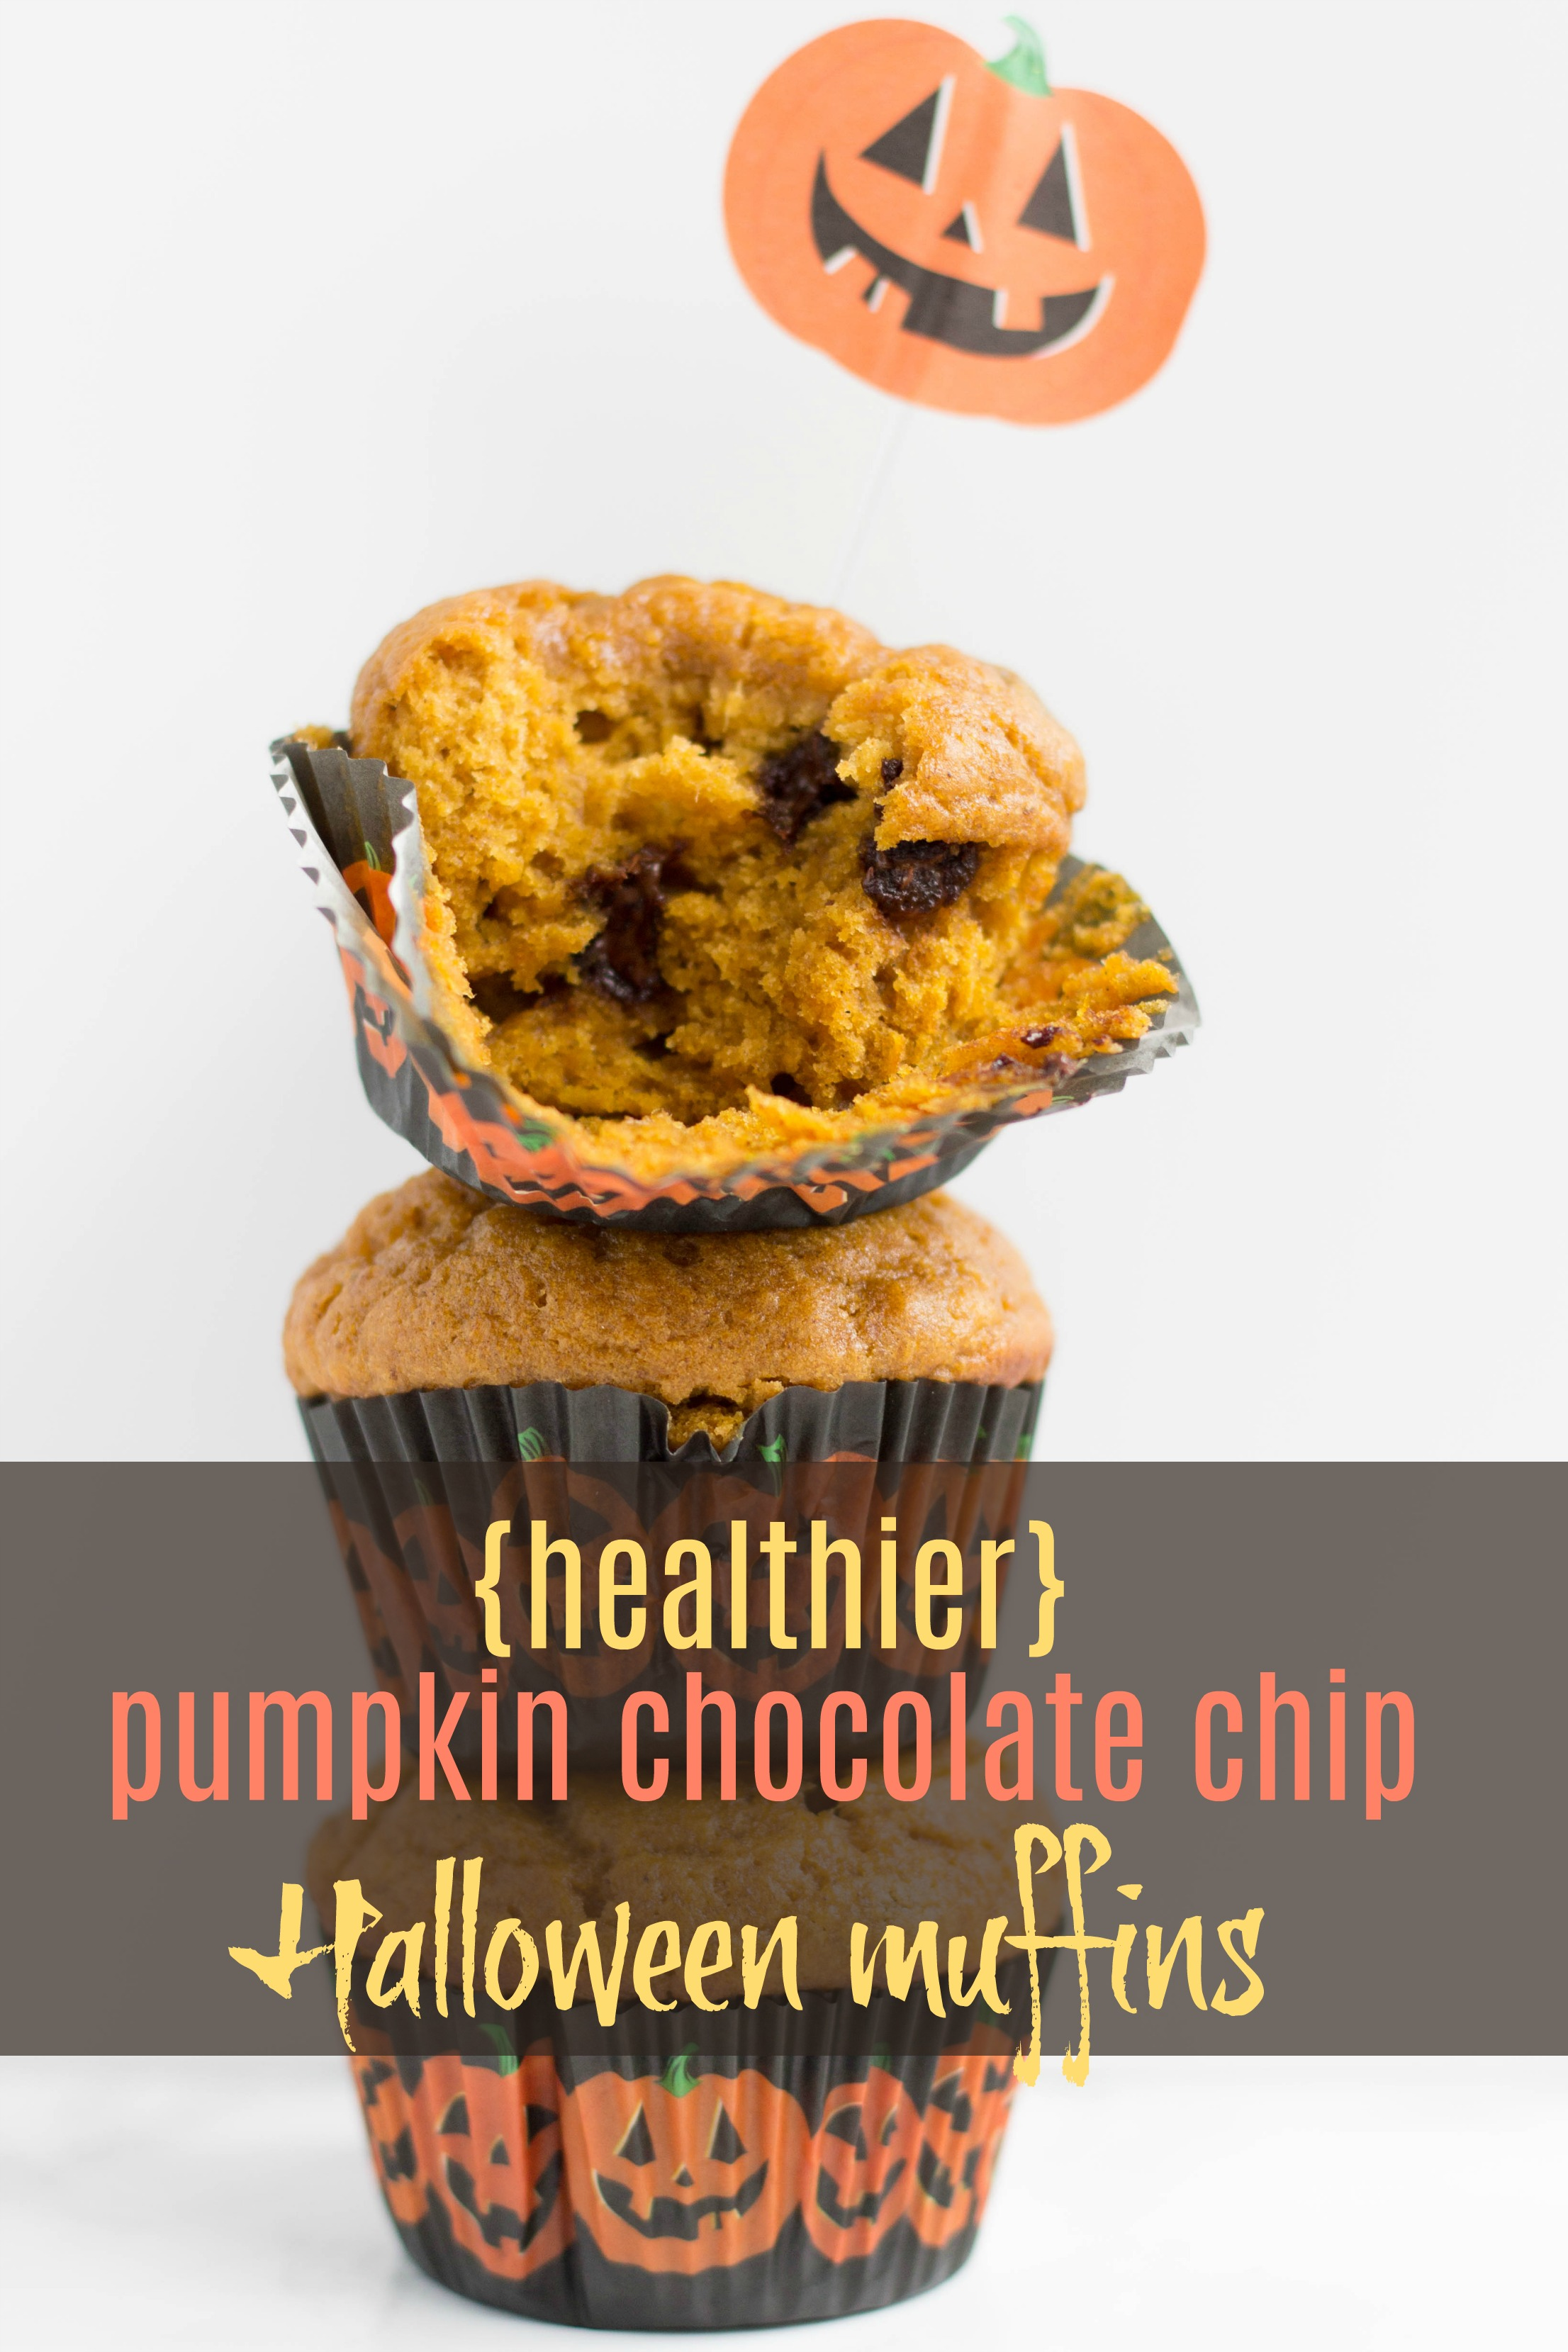 A simple to make, shareable Halloween treat with a lightened up recipe! Bake time is only 25 minutes. So yummy! | Healthier Pumpkin Chocolate Chip Halloween Muffins | Stacey Mattinson Nutrition